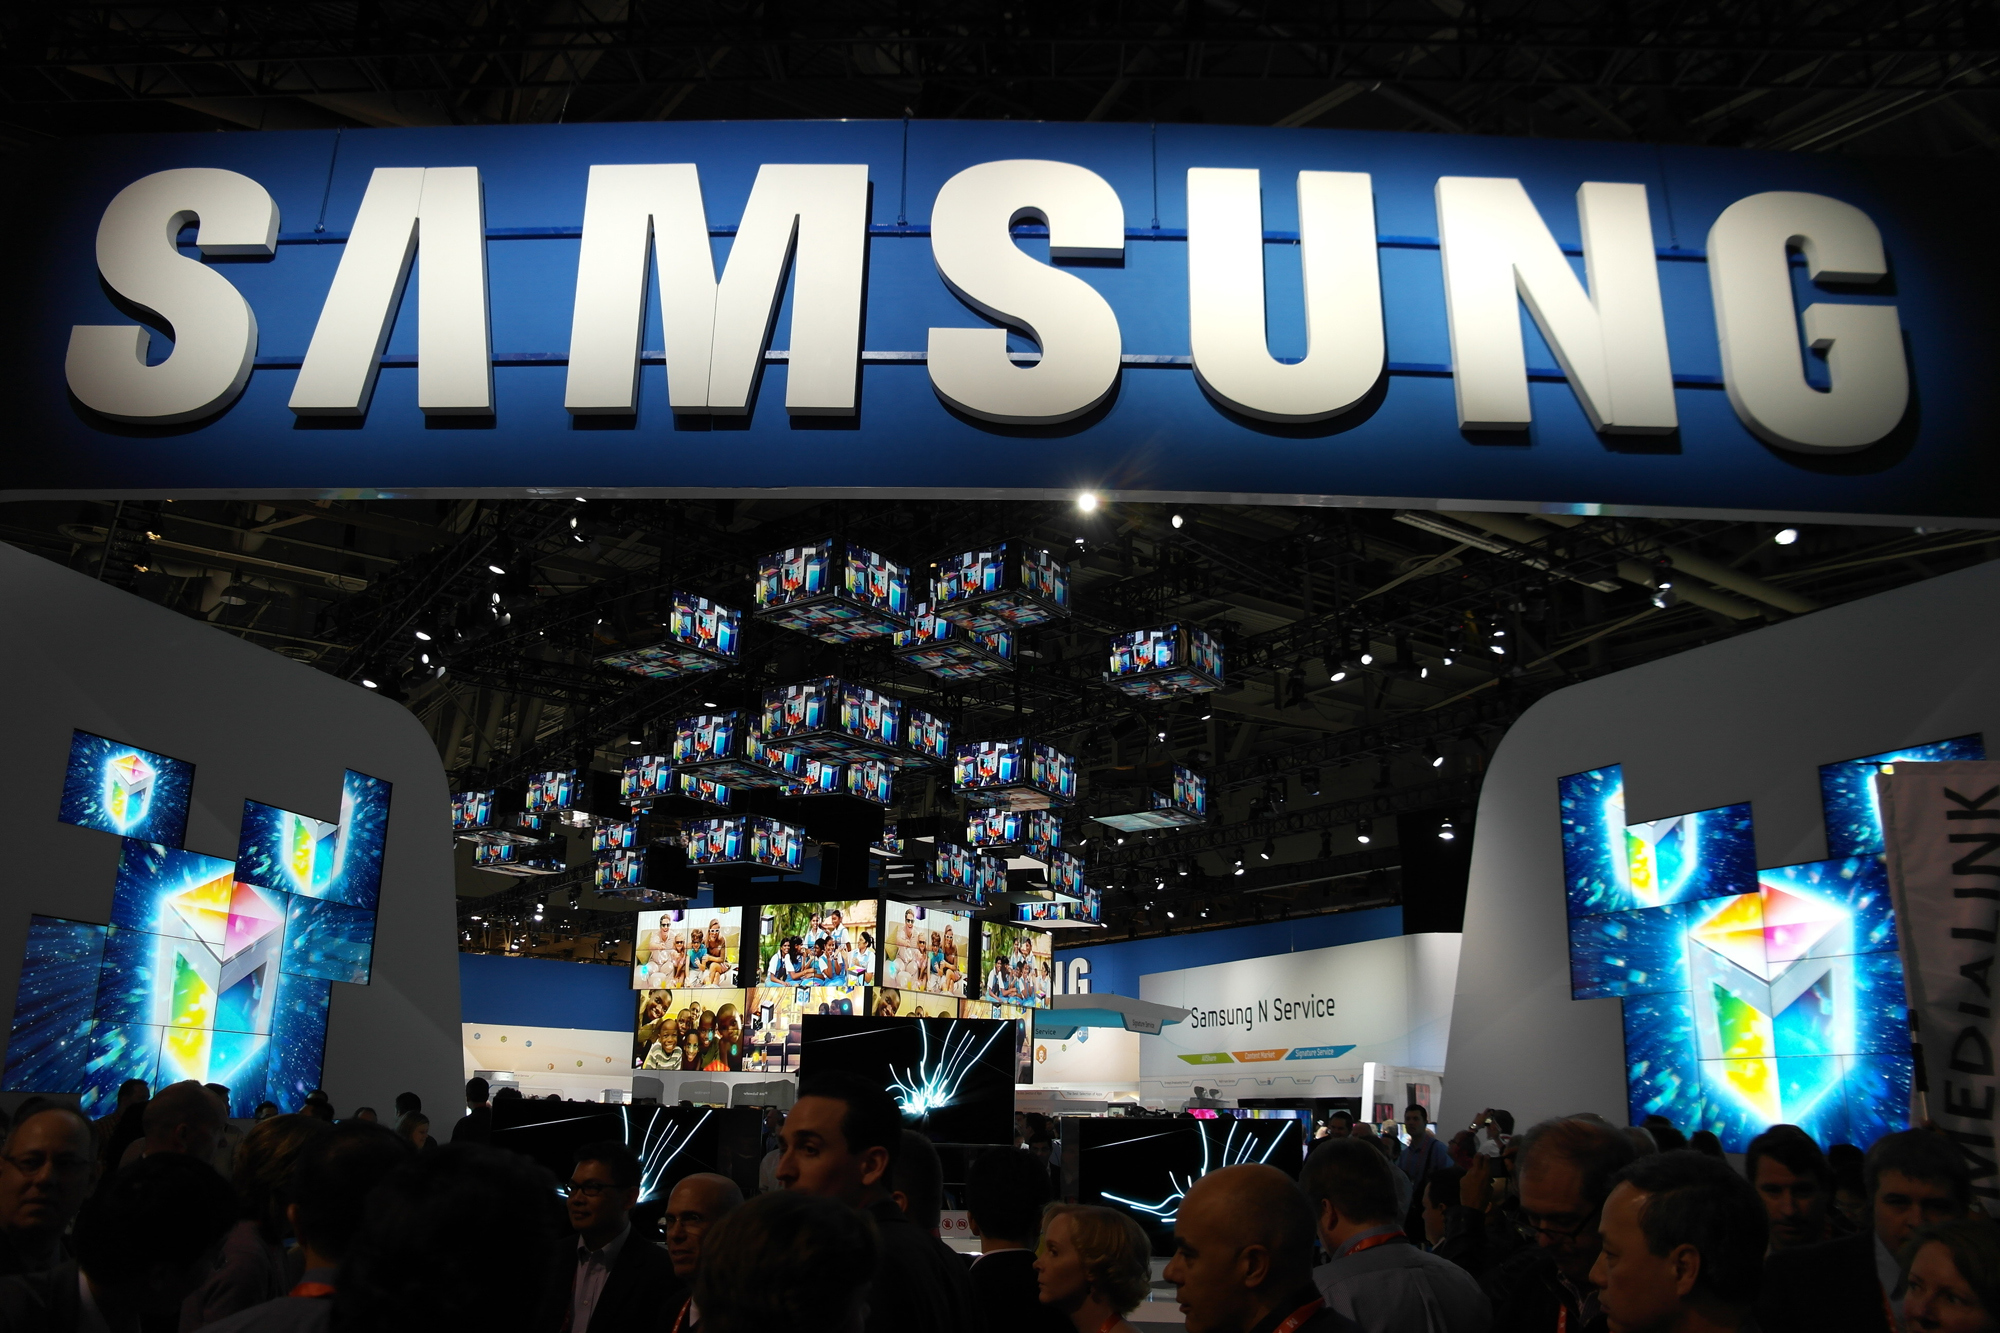 Samsung Galaxy Ativ Event Live Stream